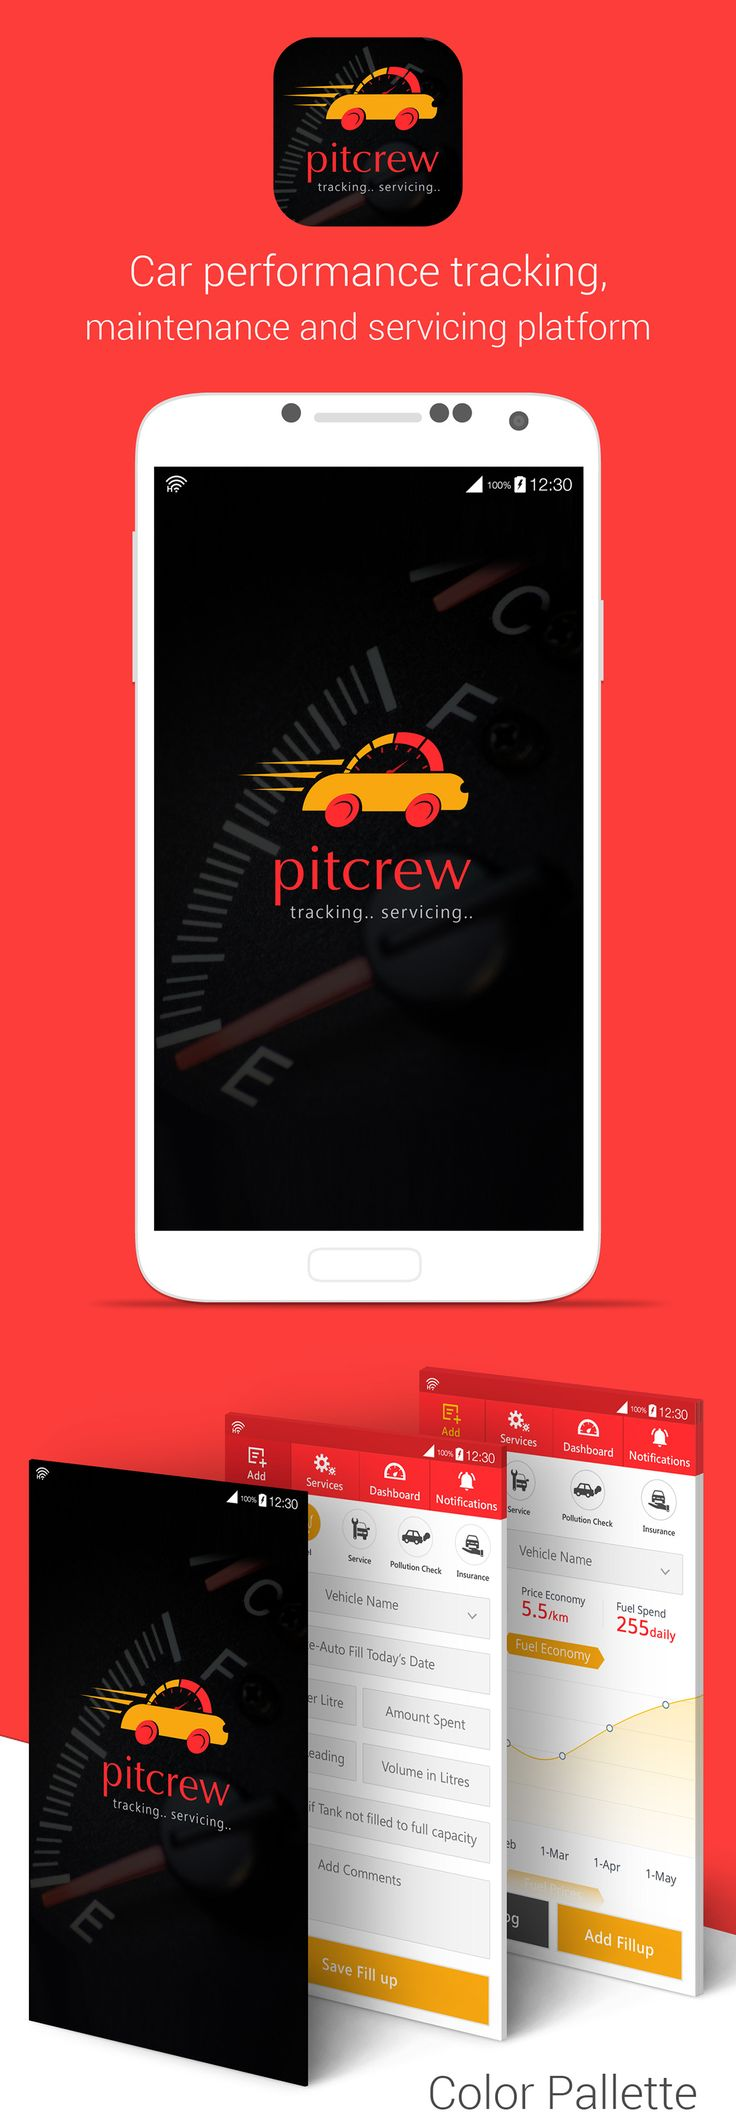 Best 25 car service app ideas on pinterest ui design patterns watch anime mobile and watch anime on mobile